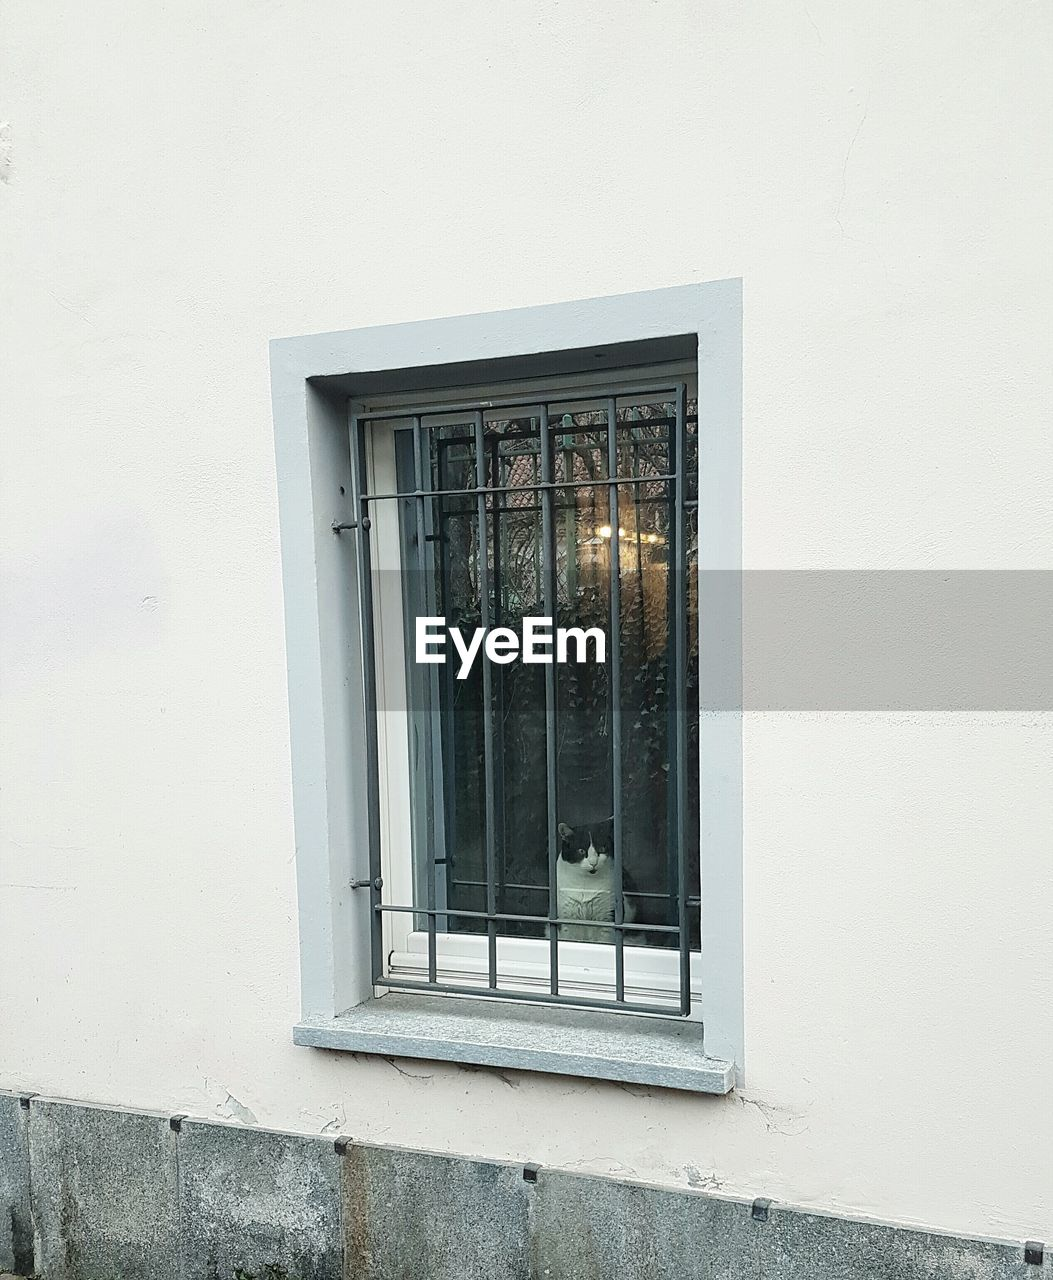 window, architecture, building exterior, built structure, no people, window sill, day, outdoors, security bar, close-up